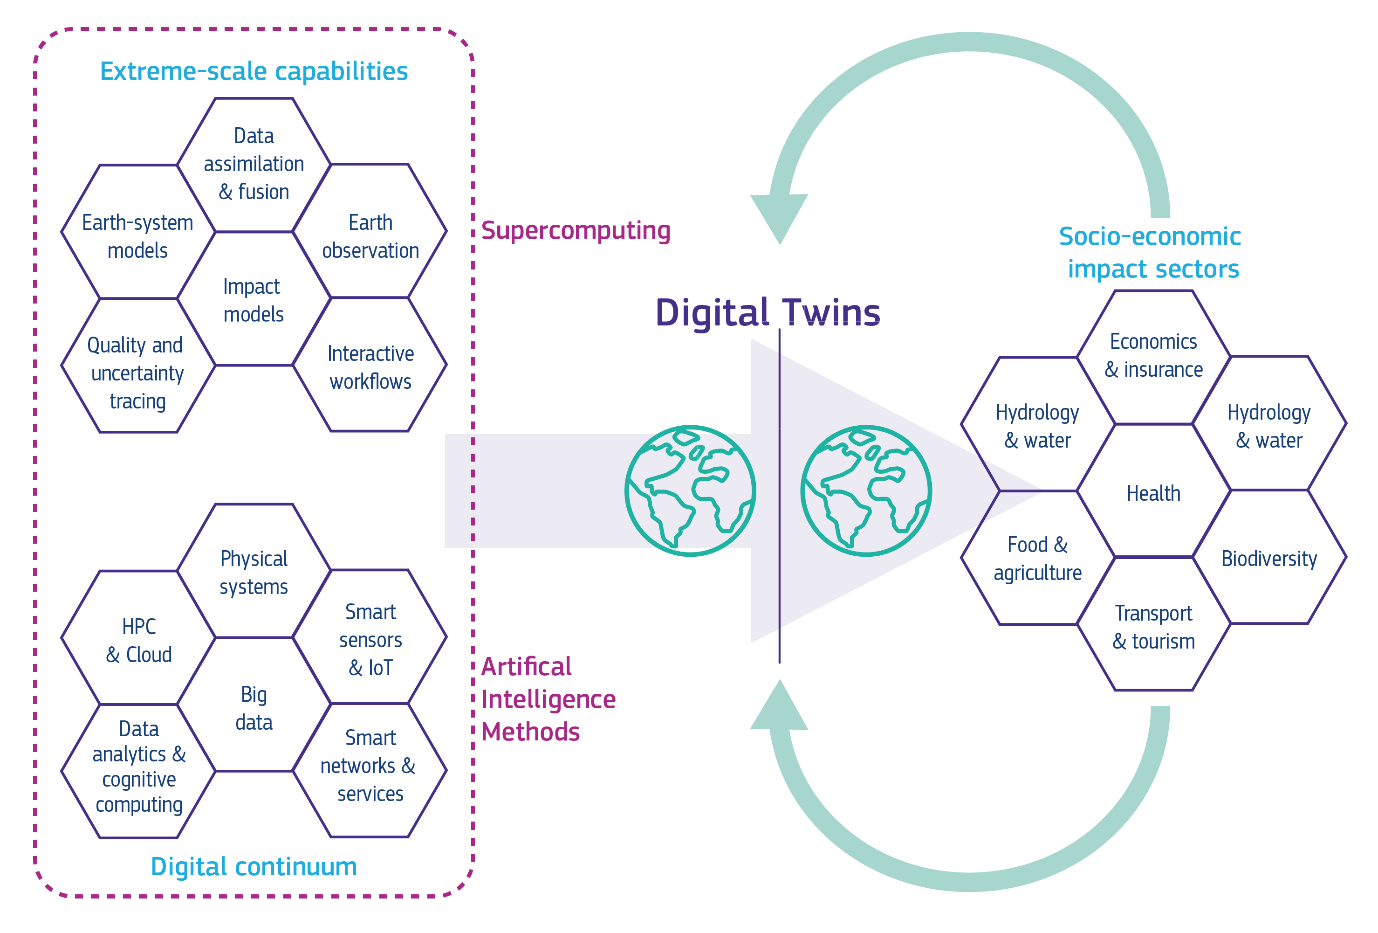 Infographic showing data feeding digital twins using supercomputing and AI methods after socio-economic impact sectors feed in data